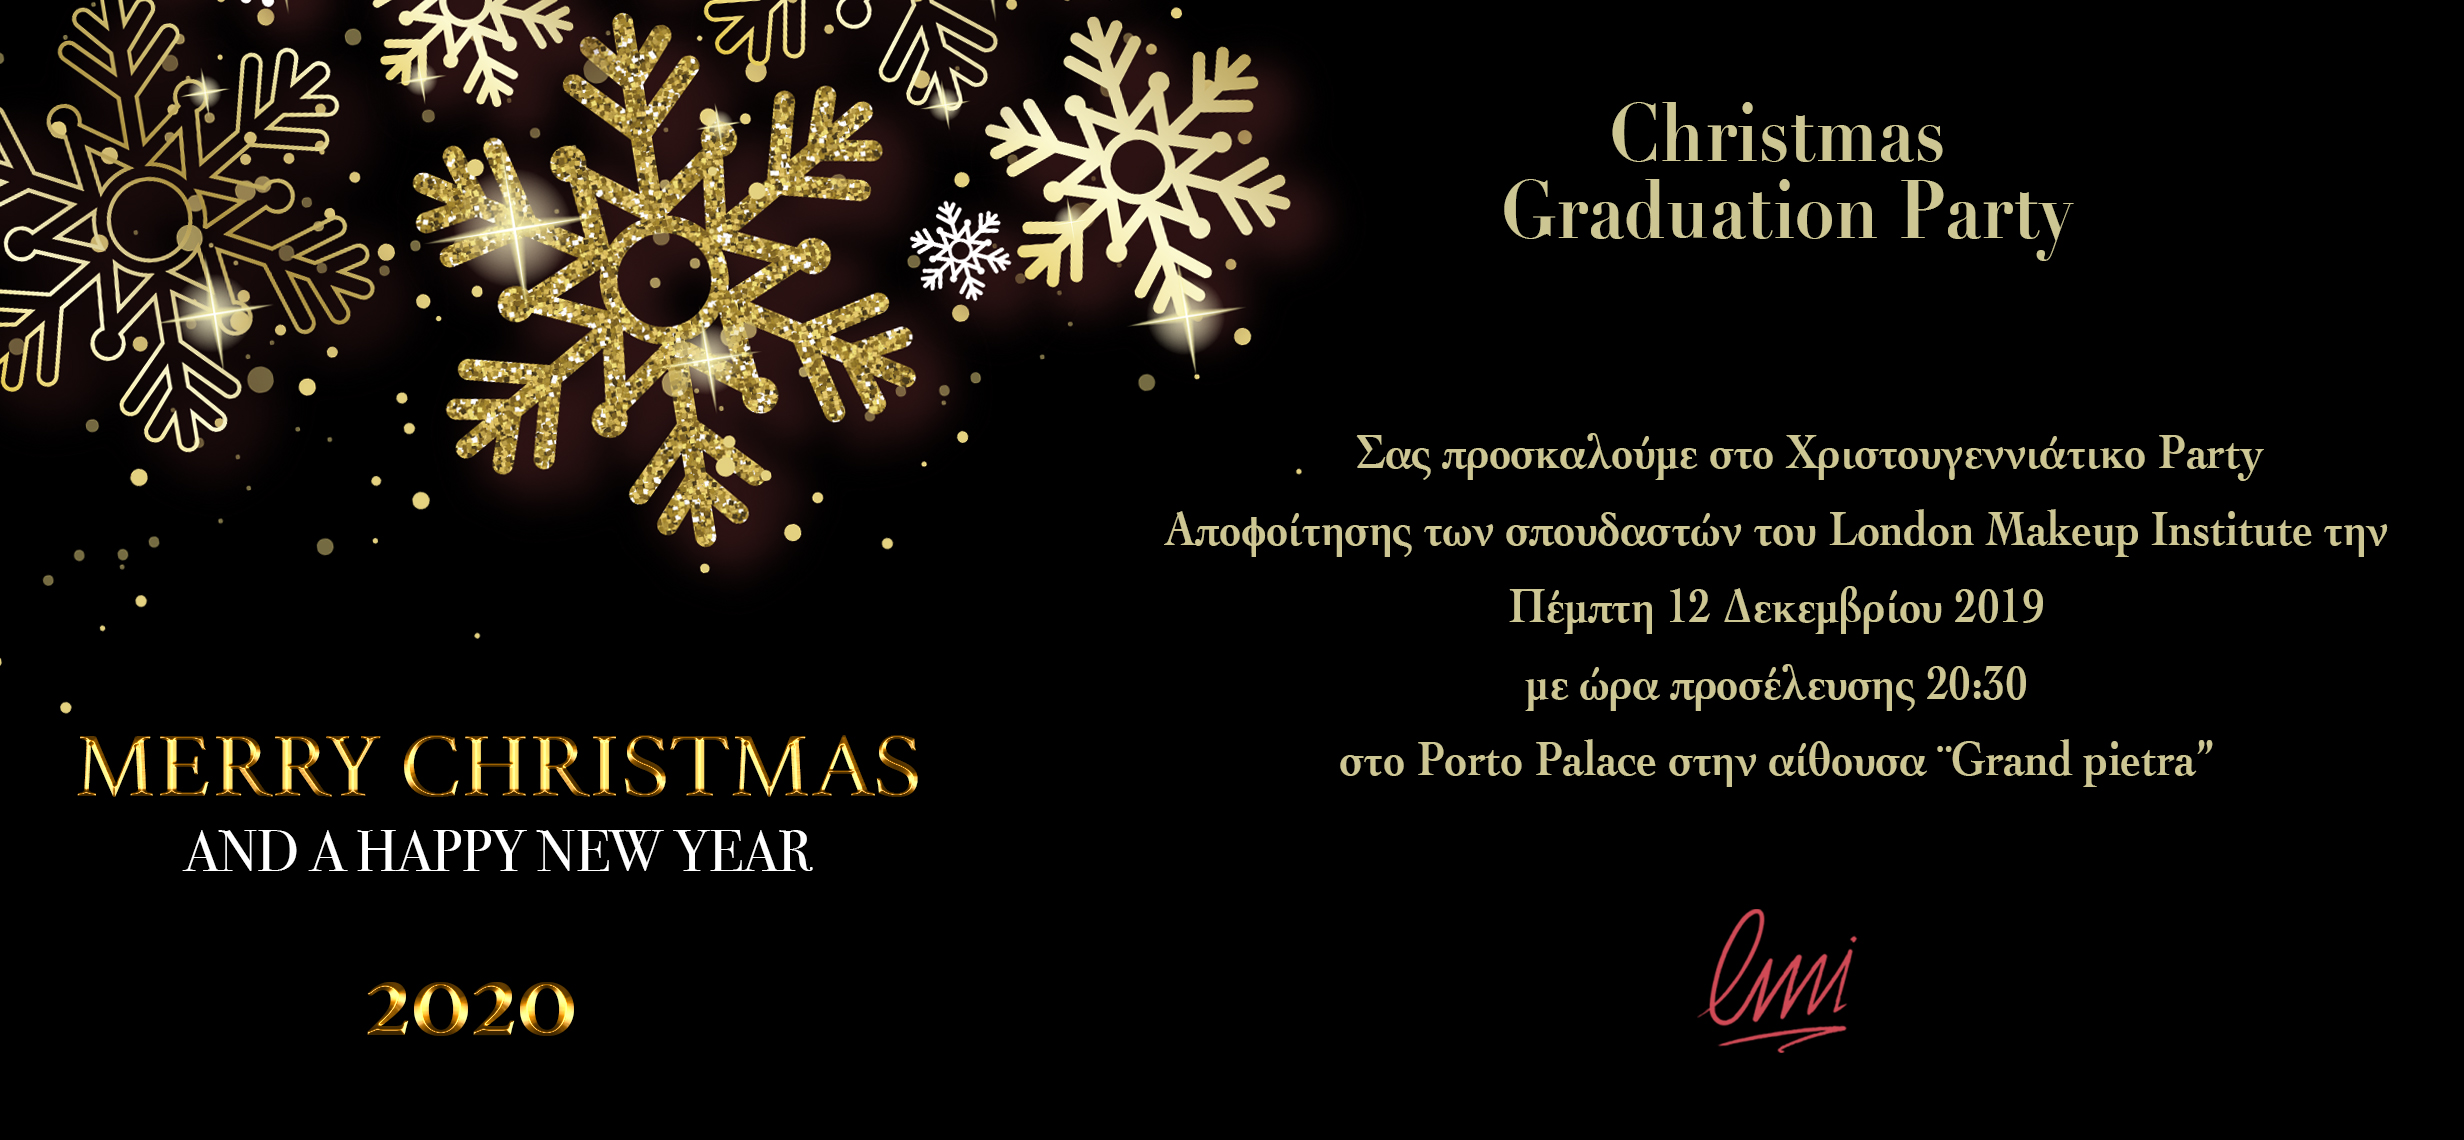 Christmas Graduation Party 2019